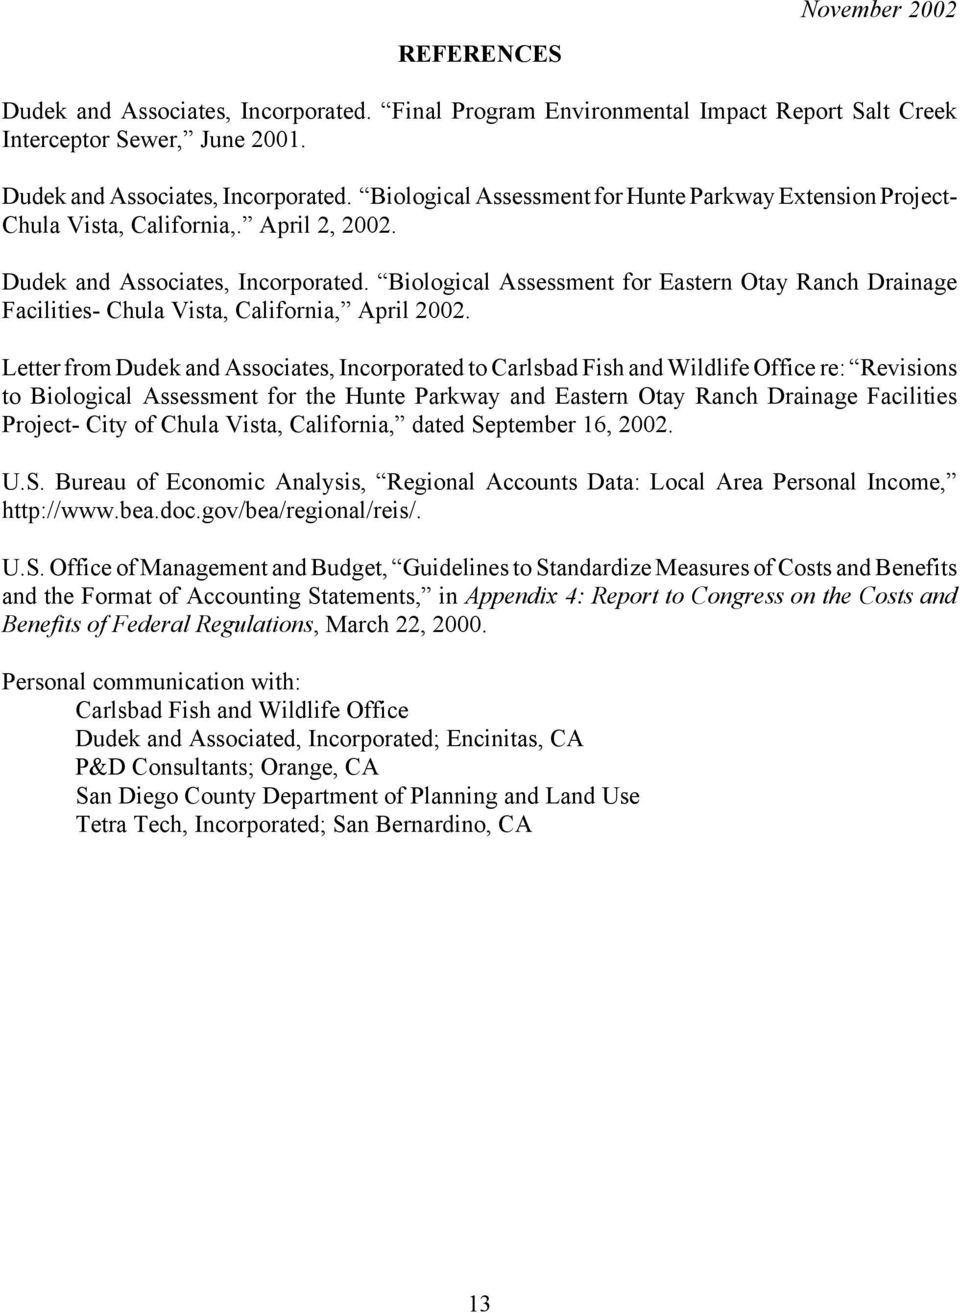 Letter from Dudek and Associates, Incorporated to Carlsbad Fish and Wildlife Office re: Revisions to Biological Assessment for the Hunte Parkway and Eastern Otay Ranch Drainage Facilities Project-